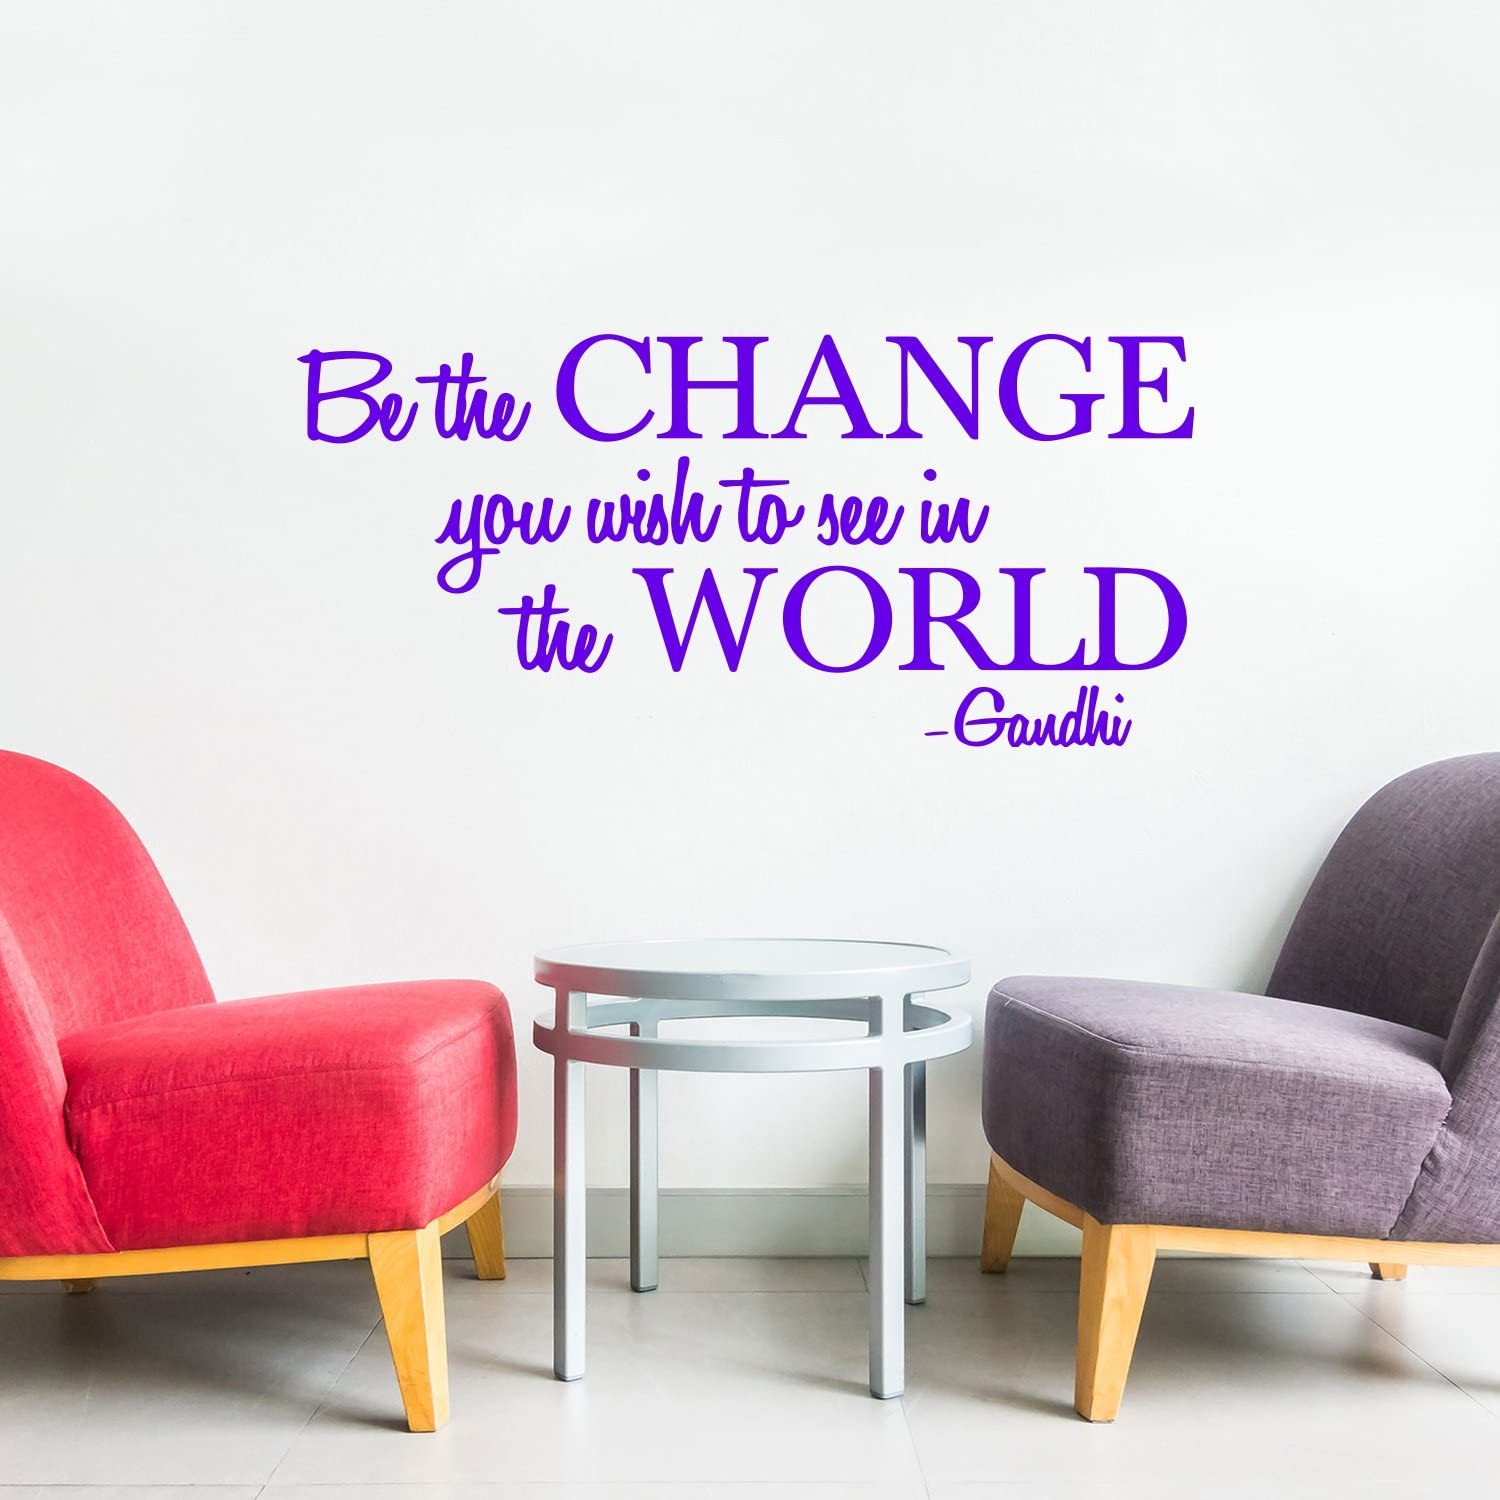 """Be The Change You Wish to See in The World Inspirational Gandhi Quote 18/"""" x 36/"""" Living Room Wall Art Decor Purple, 18 x 36 Motivational Work Quote Peel and Stick Vinyl Wall Decal Sticker"""